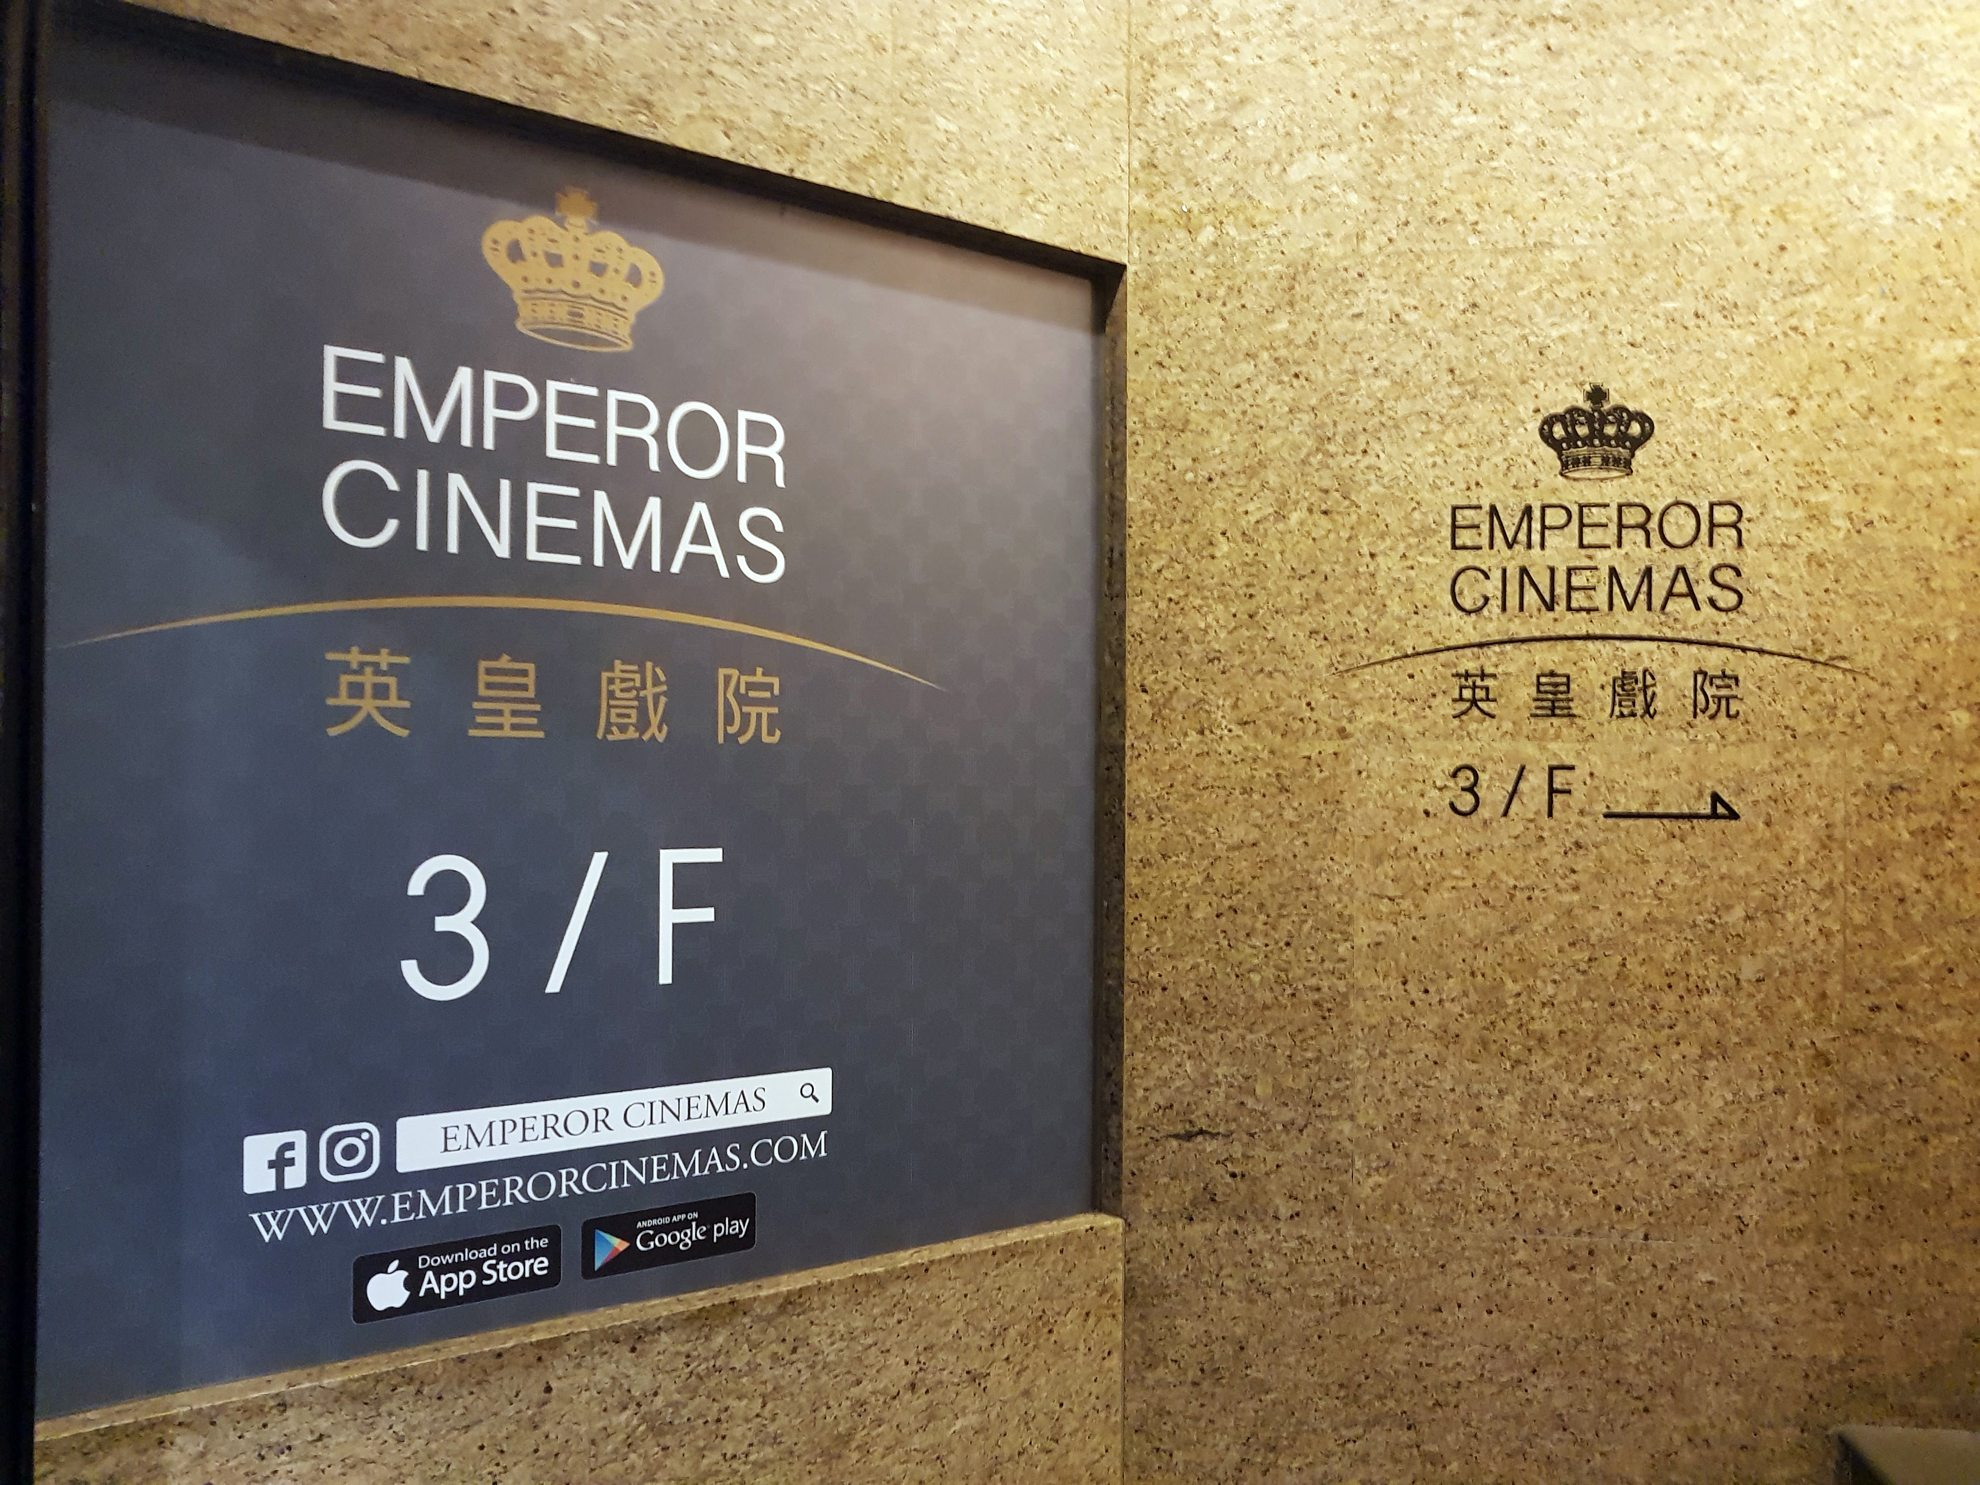 Wayfinding Signage at the Emperor Cinemas in Hong Kong